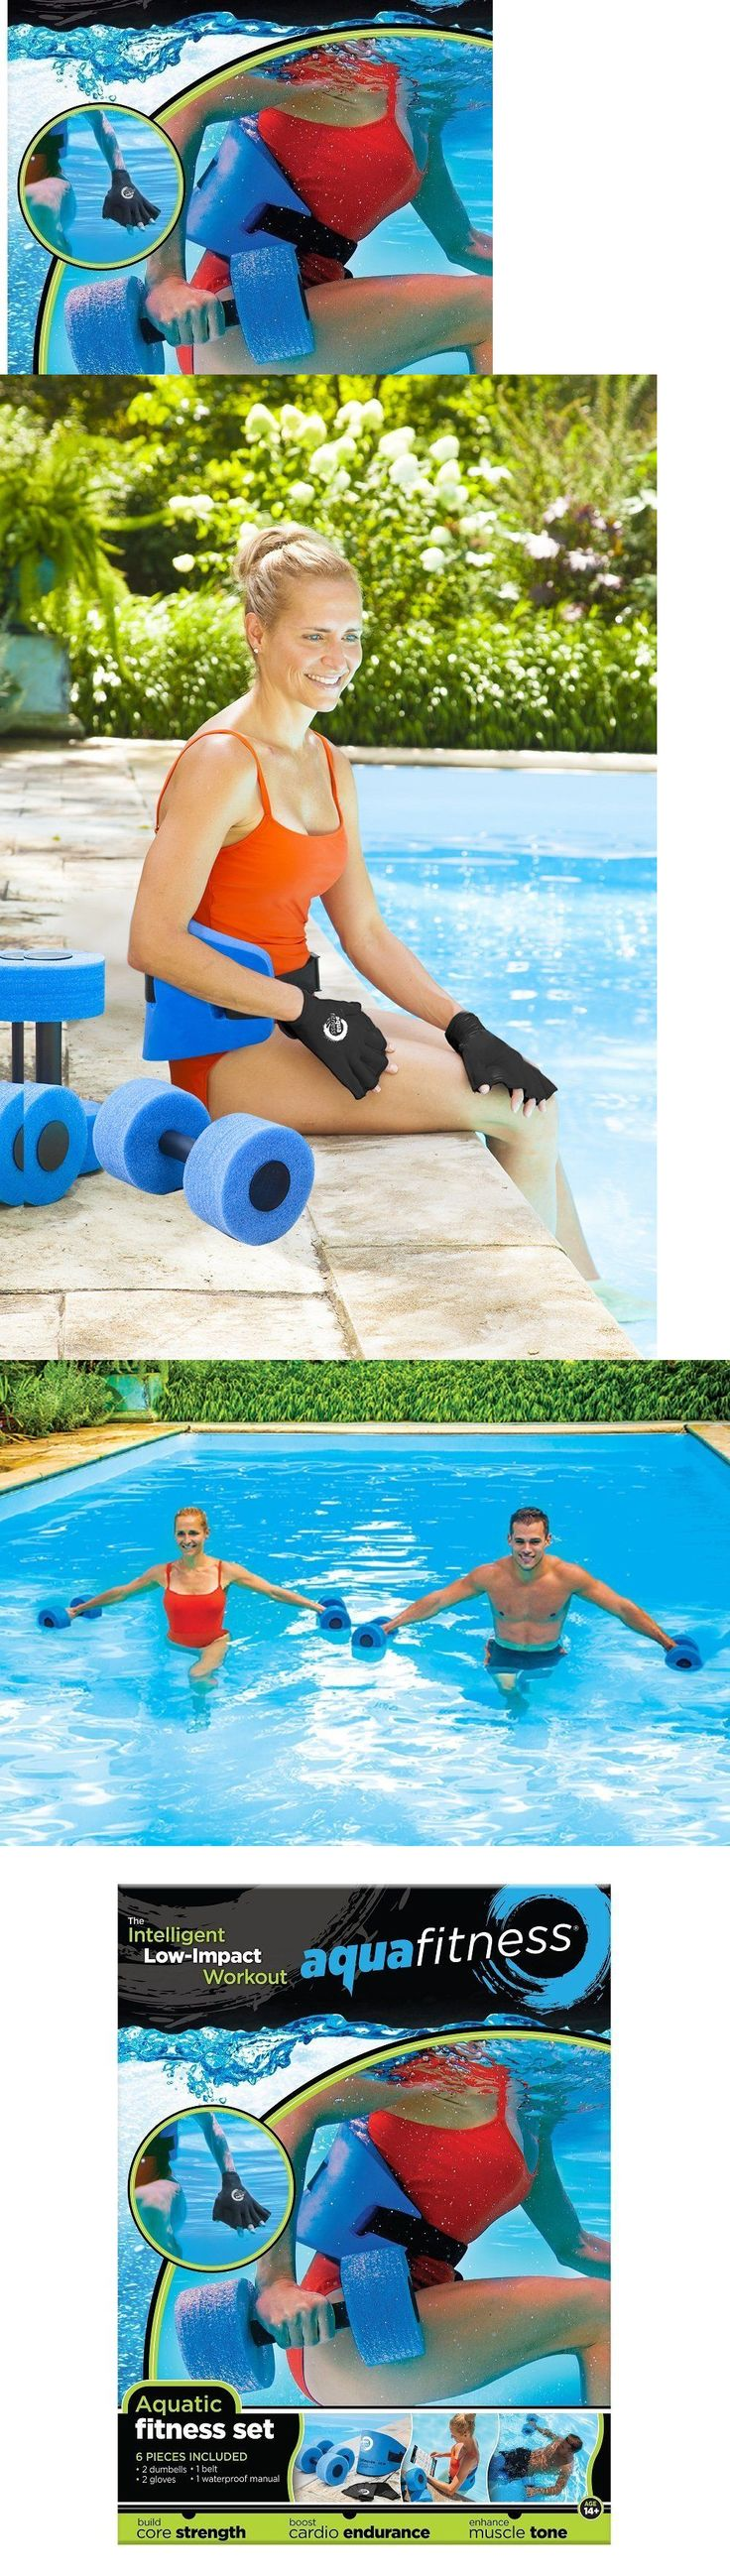 Aquatic Fitness Equipment 158922: Pool Workout Water Fitness Exercise Equipment Aerobic Dumbbells Aquatic 6 Pc Set -> BUY IT NOW ONLY: $45.05 on eBay!